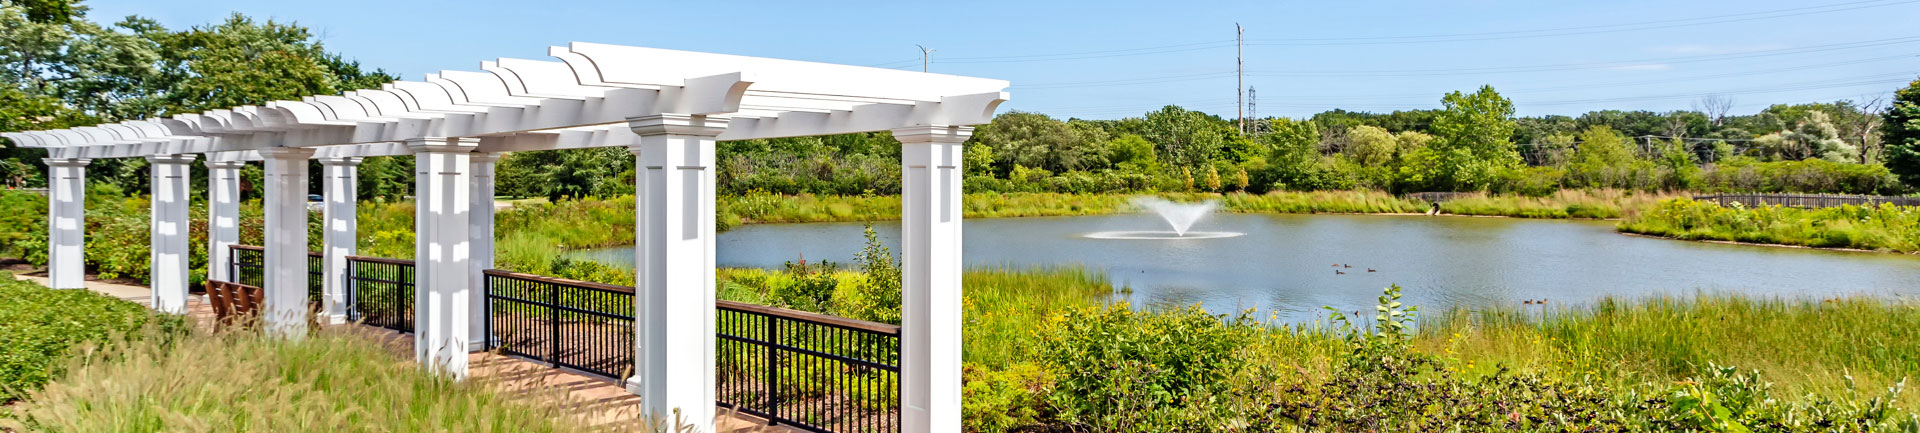 a covered walkway next to a pond with a fountain